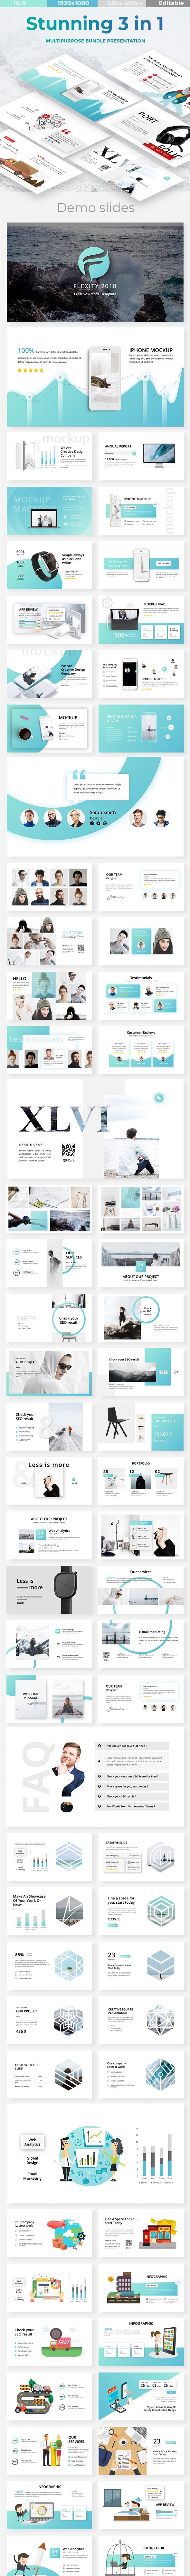 stunning 3 in 1 bundle creative powerpoint template by este studio